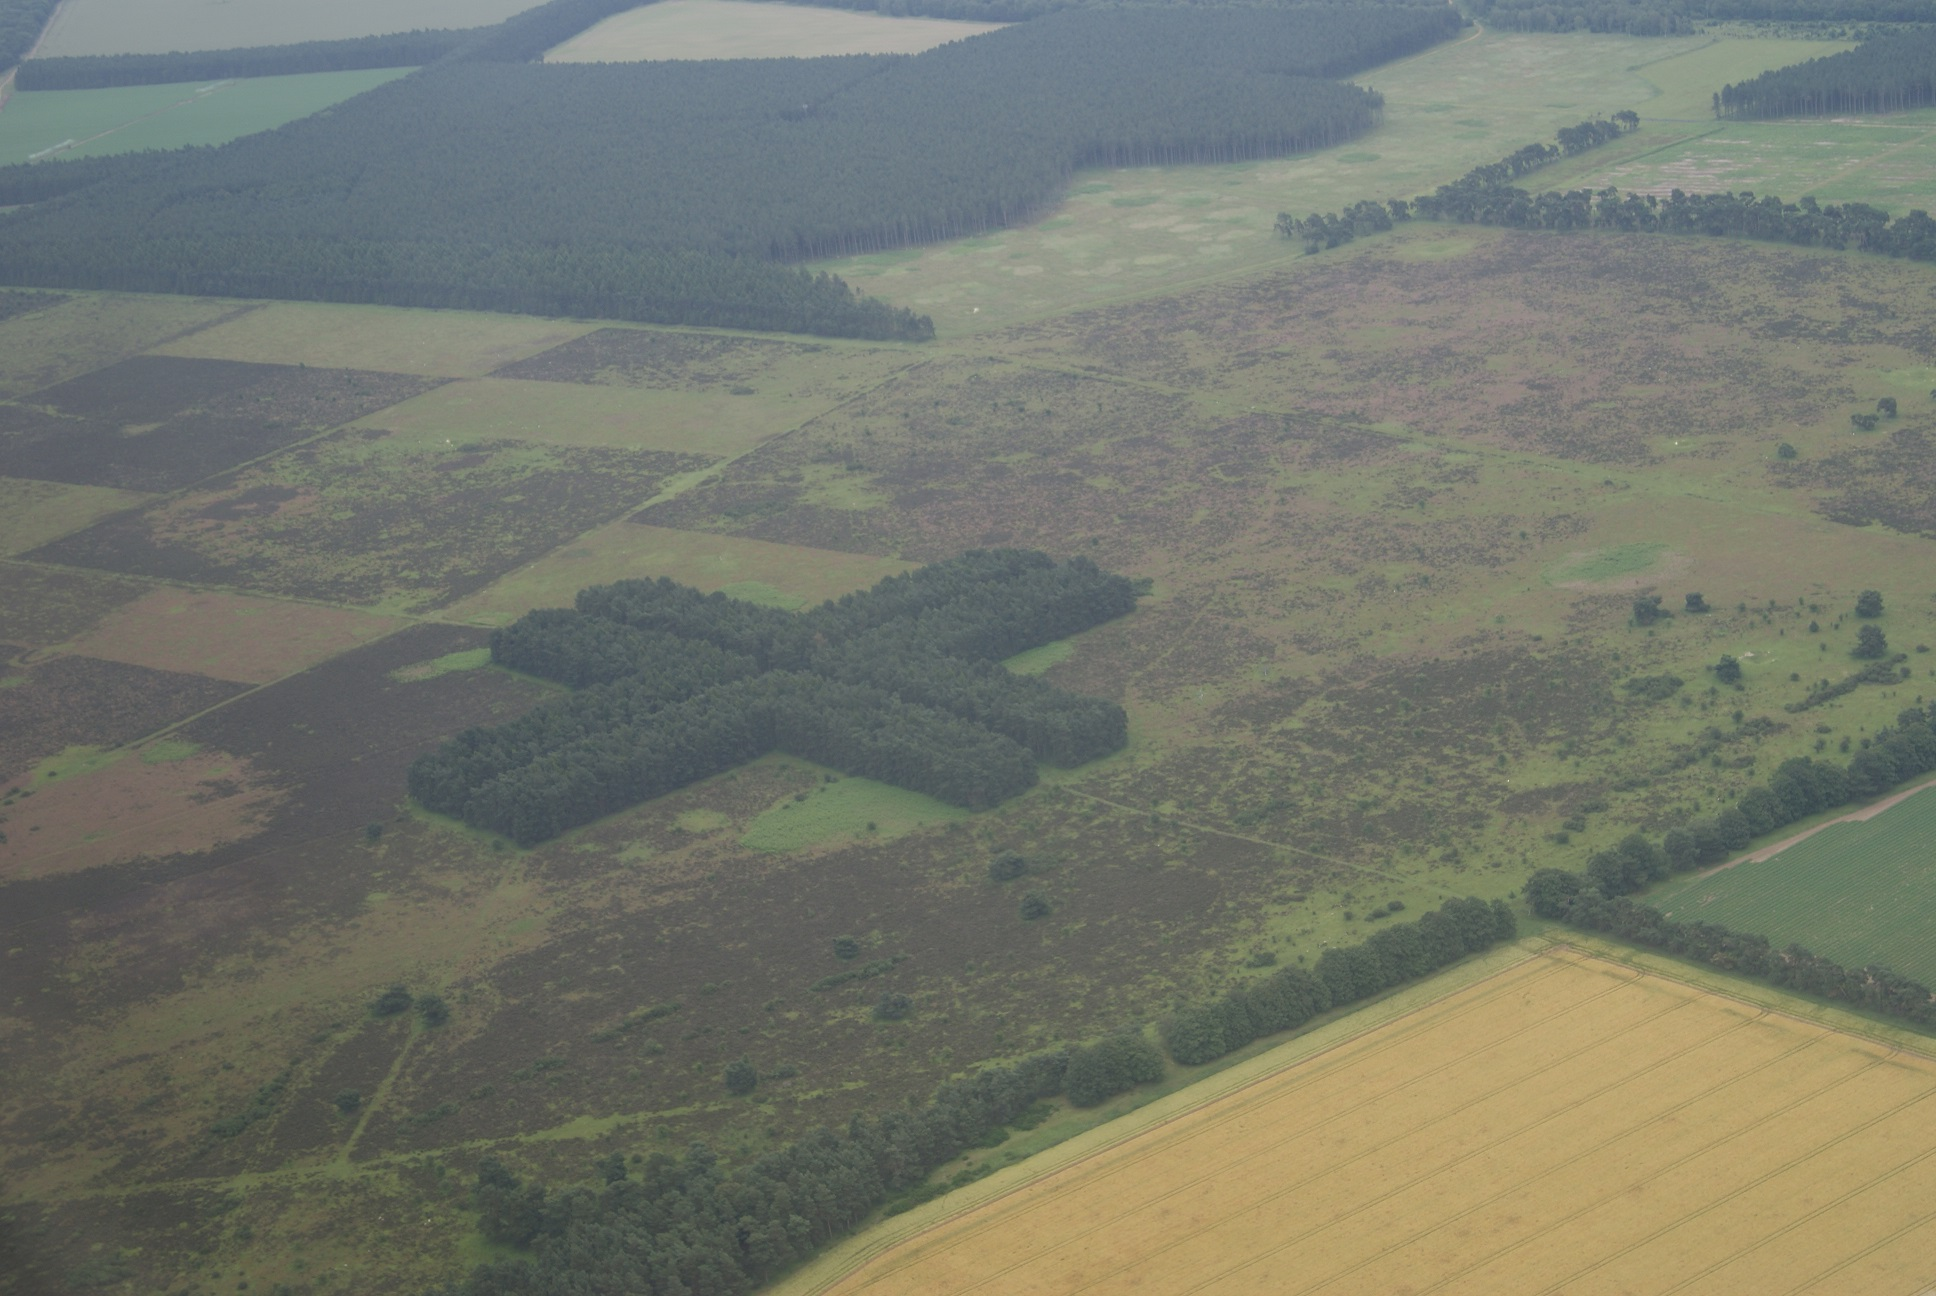 Thetford Forest, Structured from the sky.